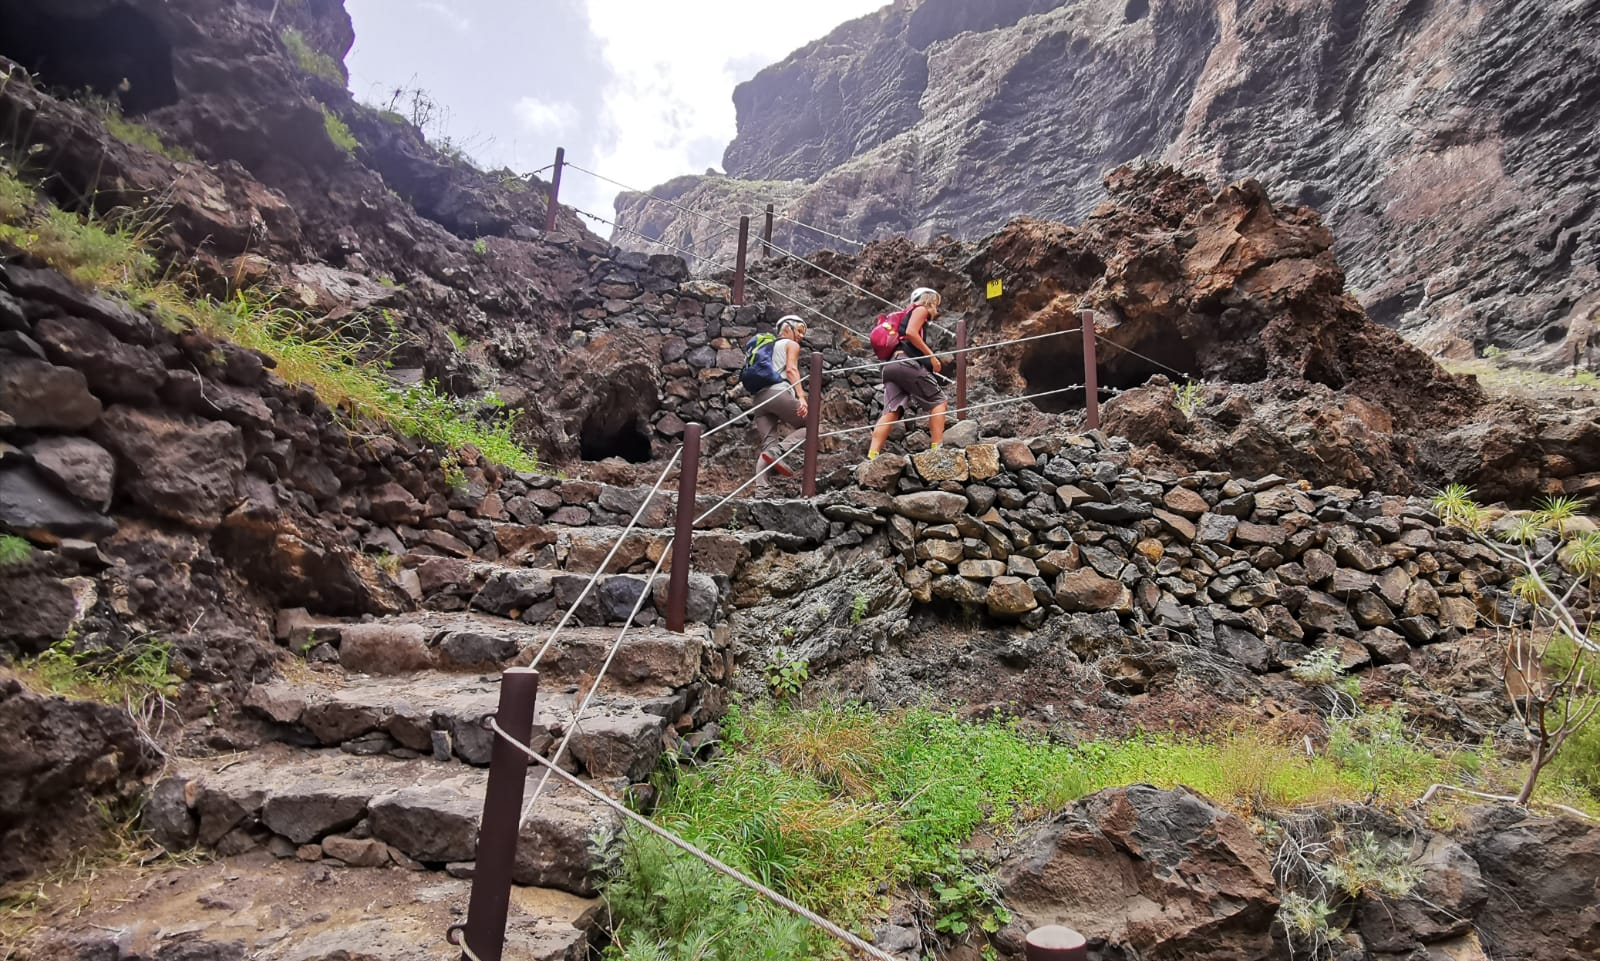 Hiking on secured stairs and with helmets in the Barranco of Masca - Photo: Robert Große Bley